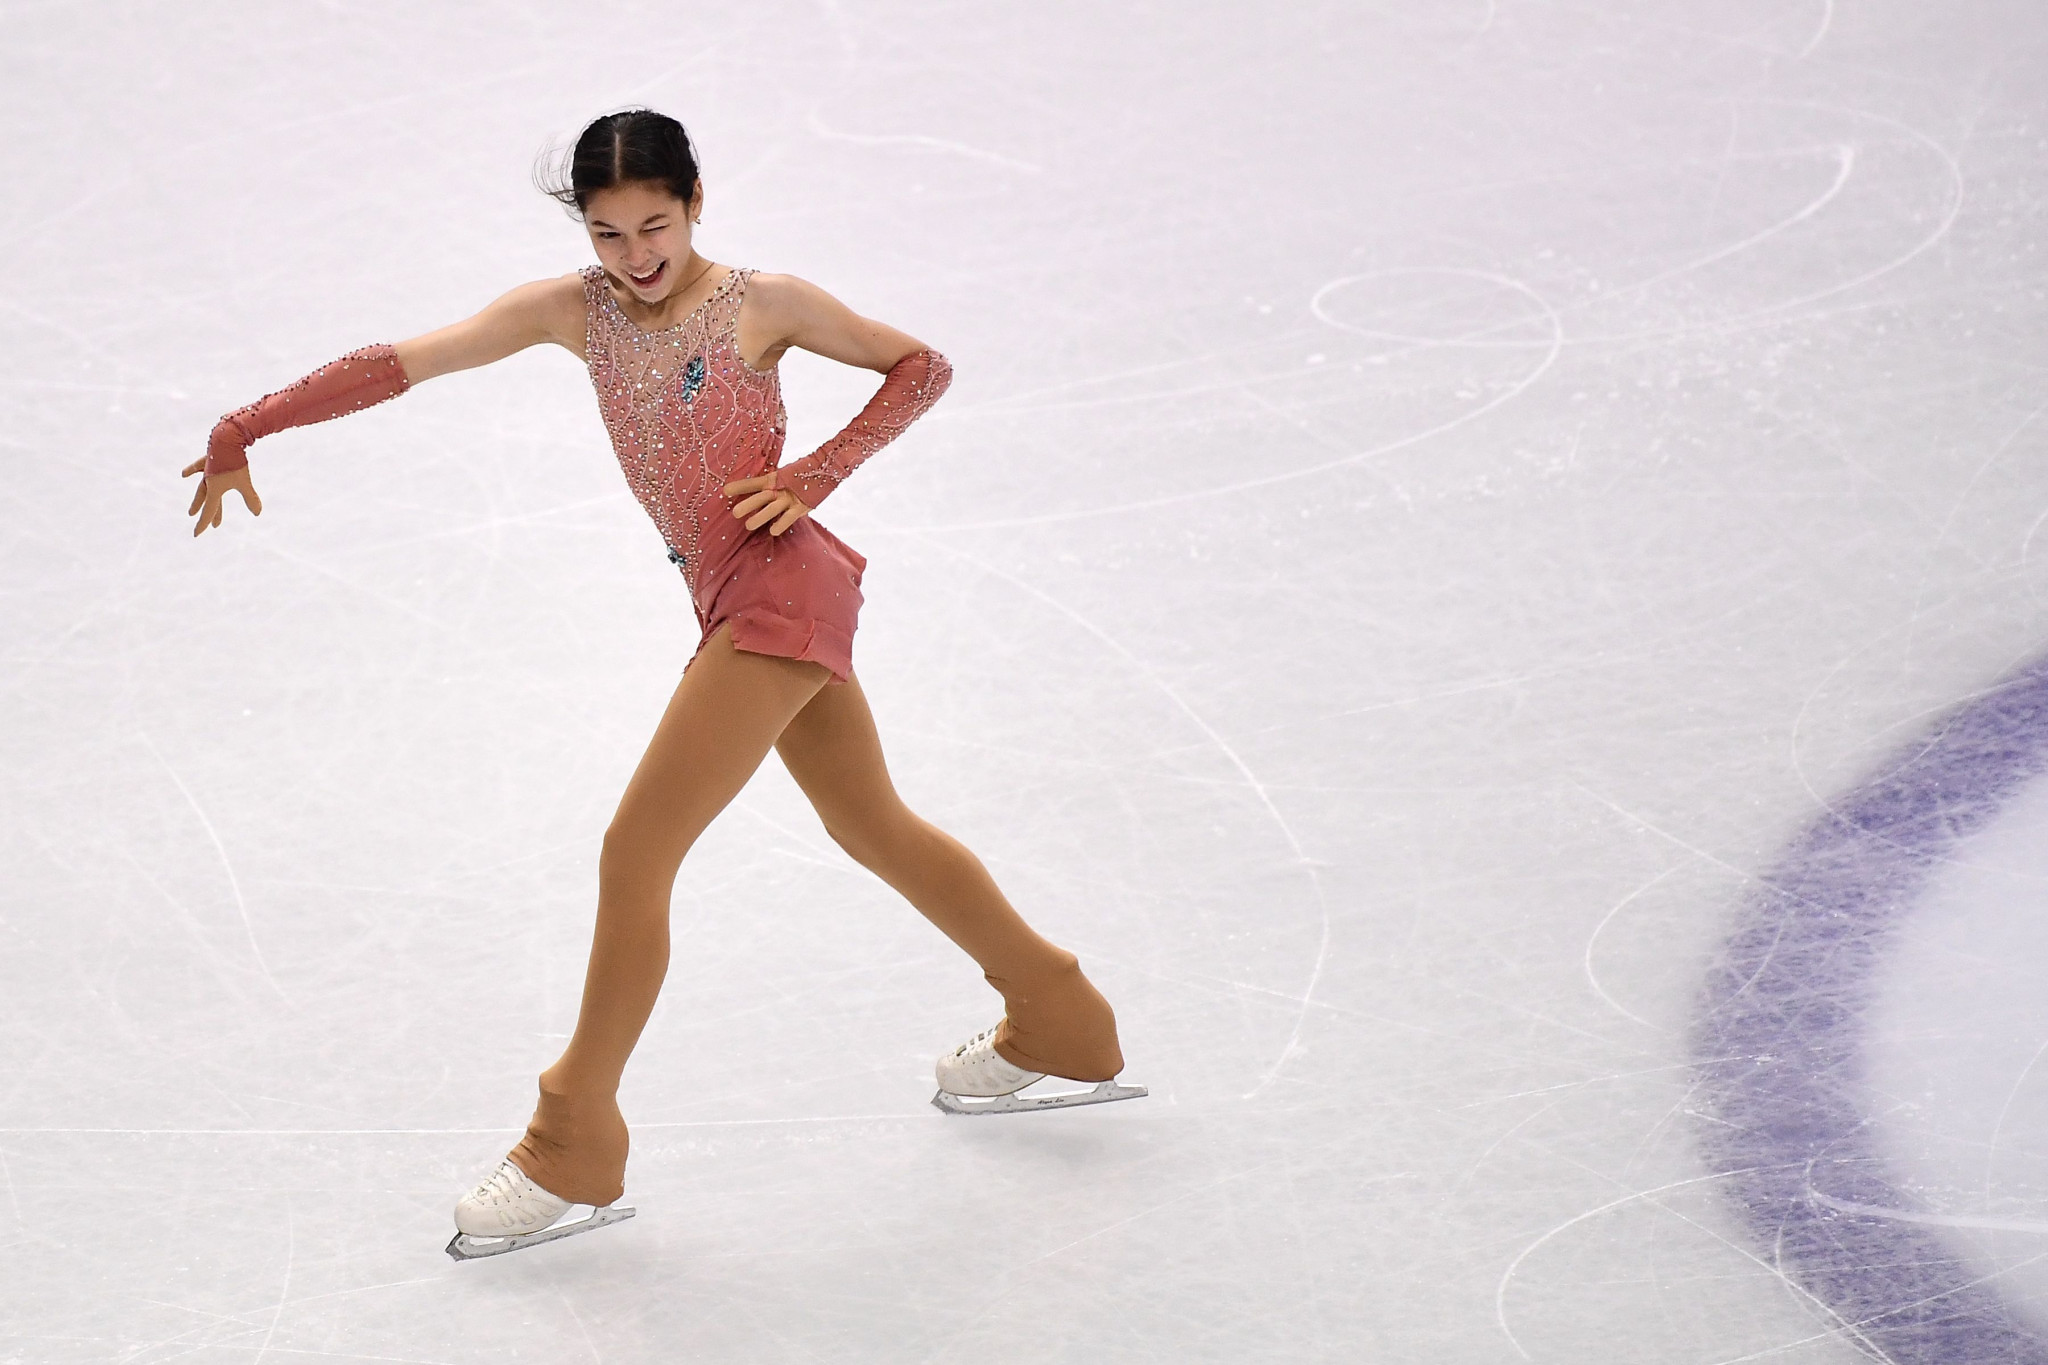 Neither of the first two Junior Grand Prix legs on the calendar will go ahead ©Getty Images